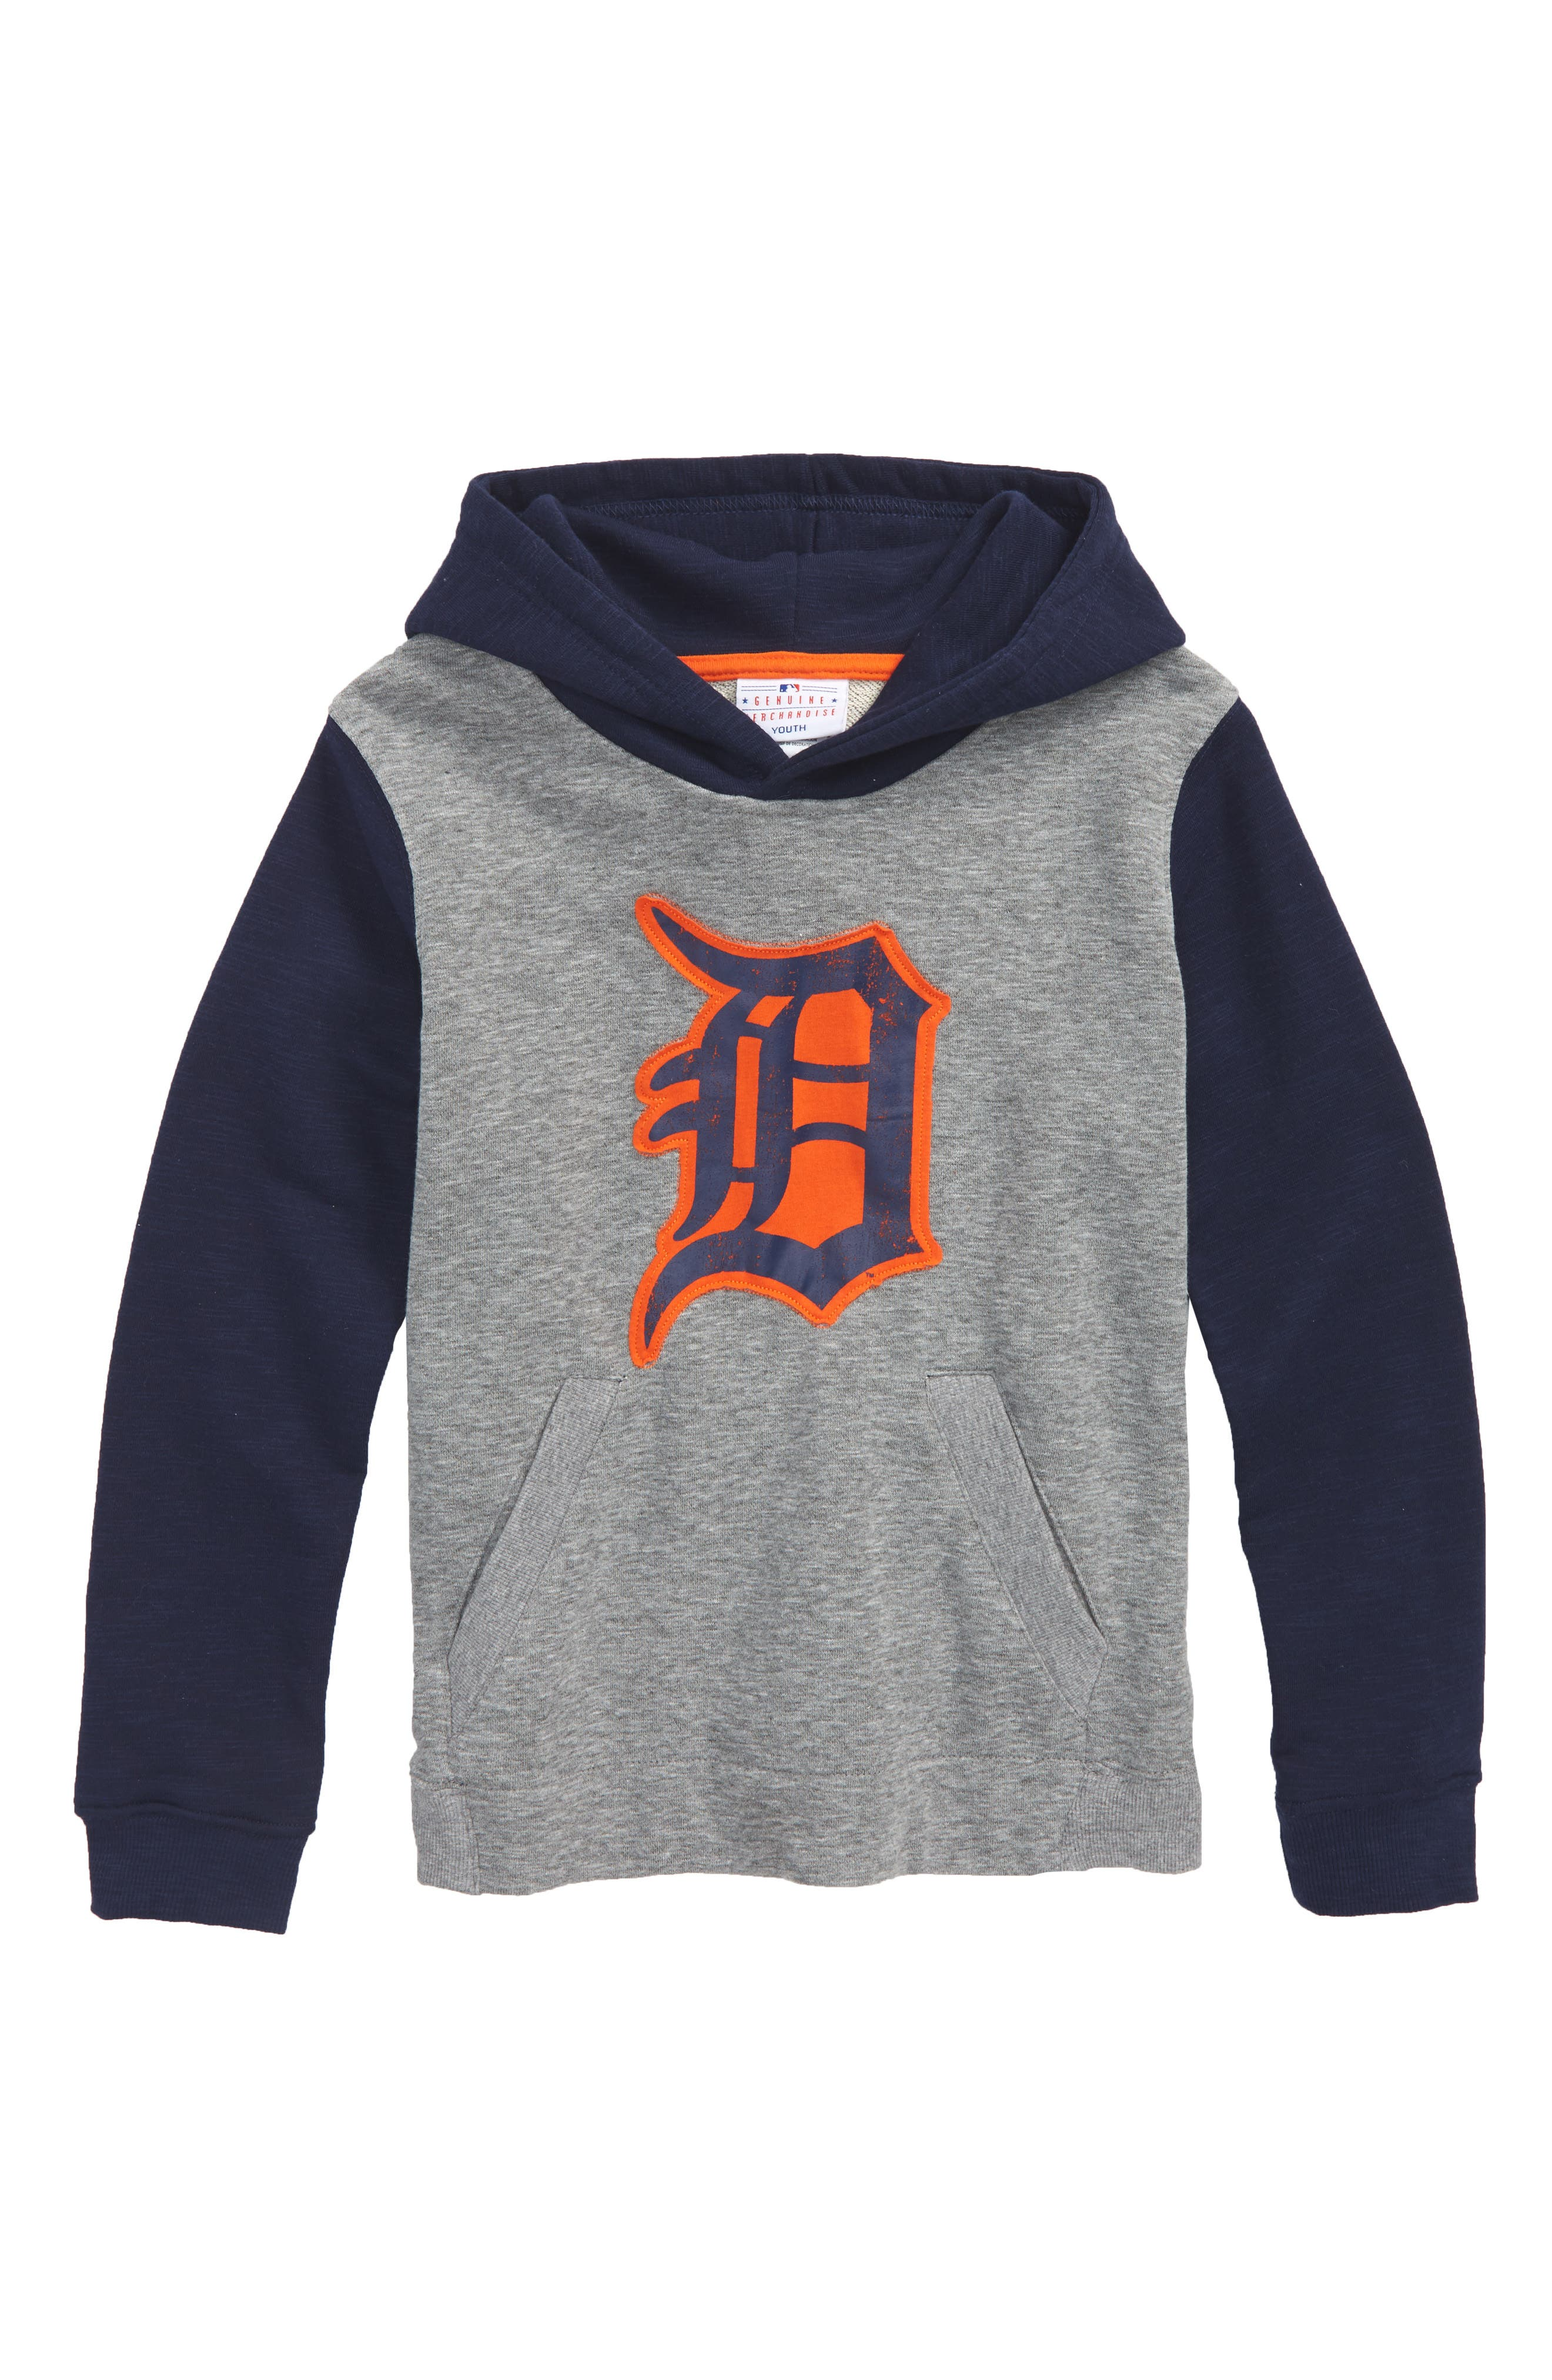 New Beginnings - Detroit Tigers Pullover Hoodie,                             Main thumbnail 1, color,                             020